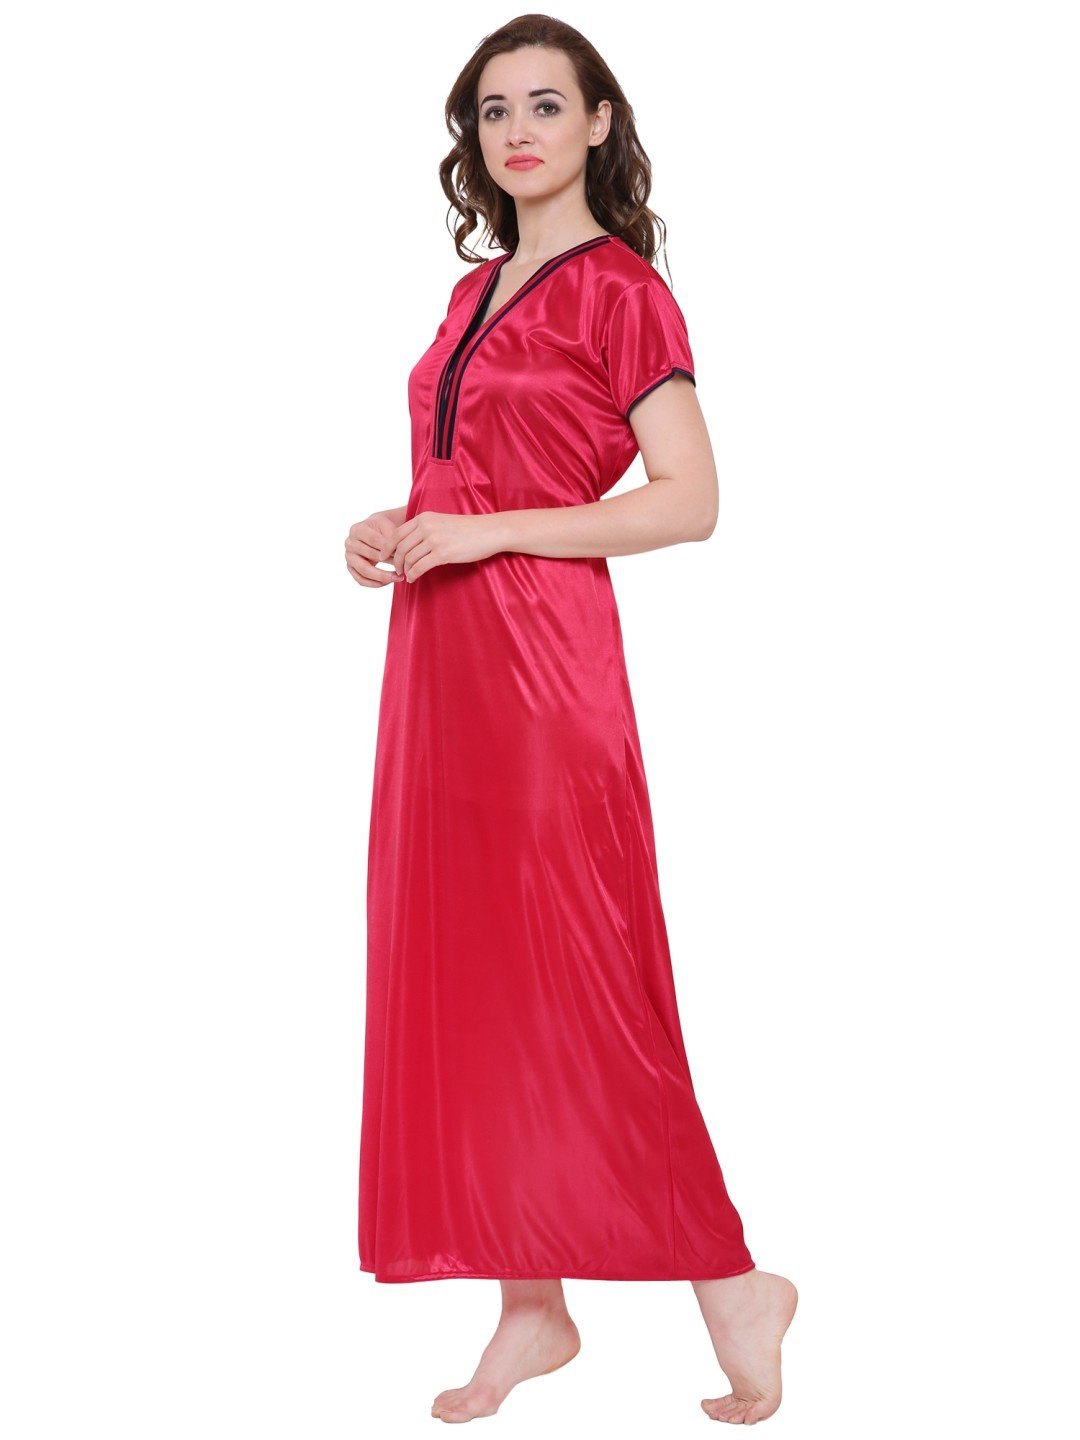 Klamotten Women's Satin Nightdress DS41C